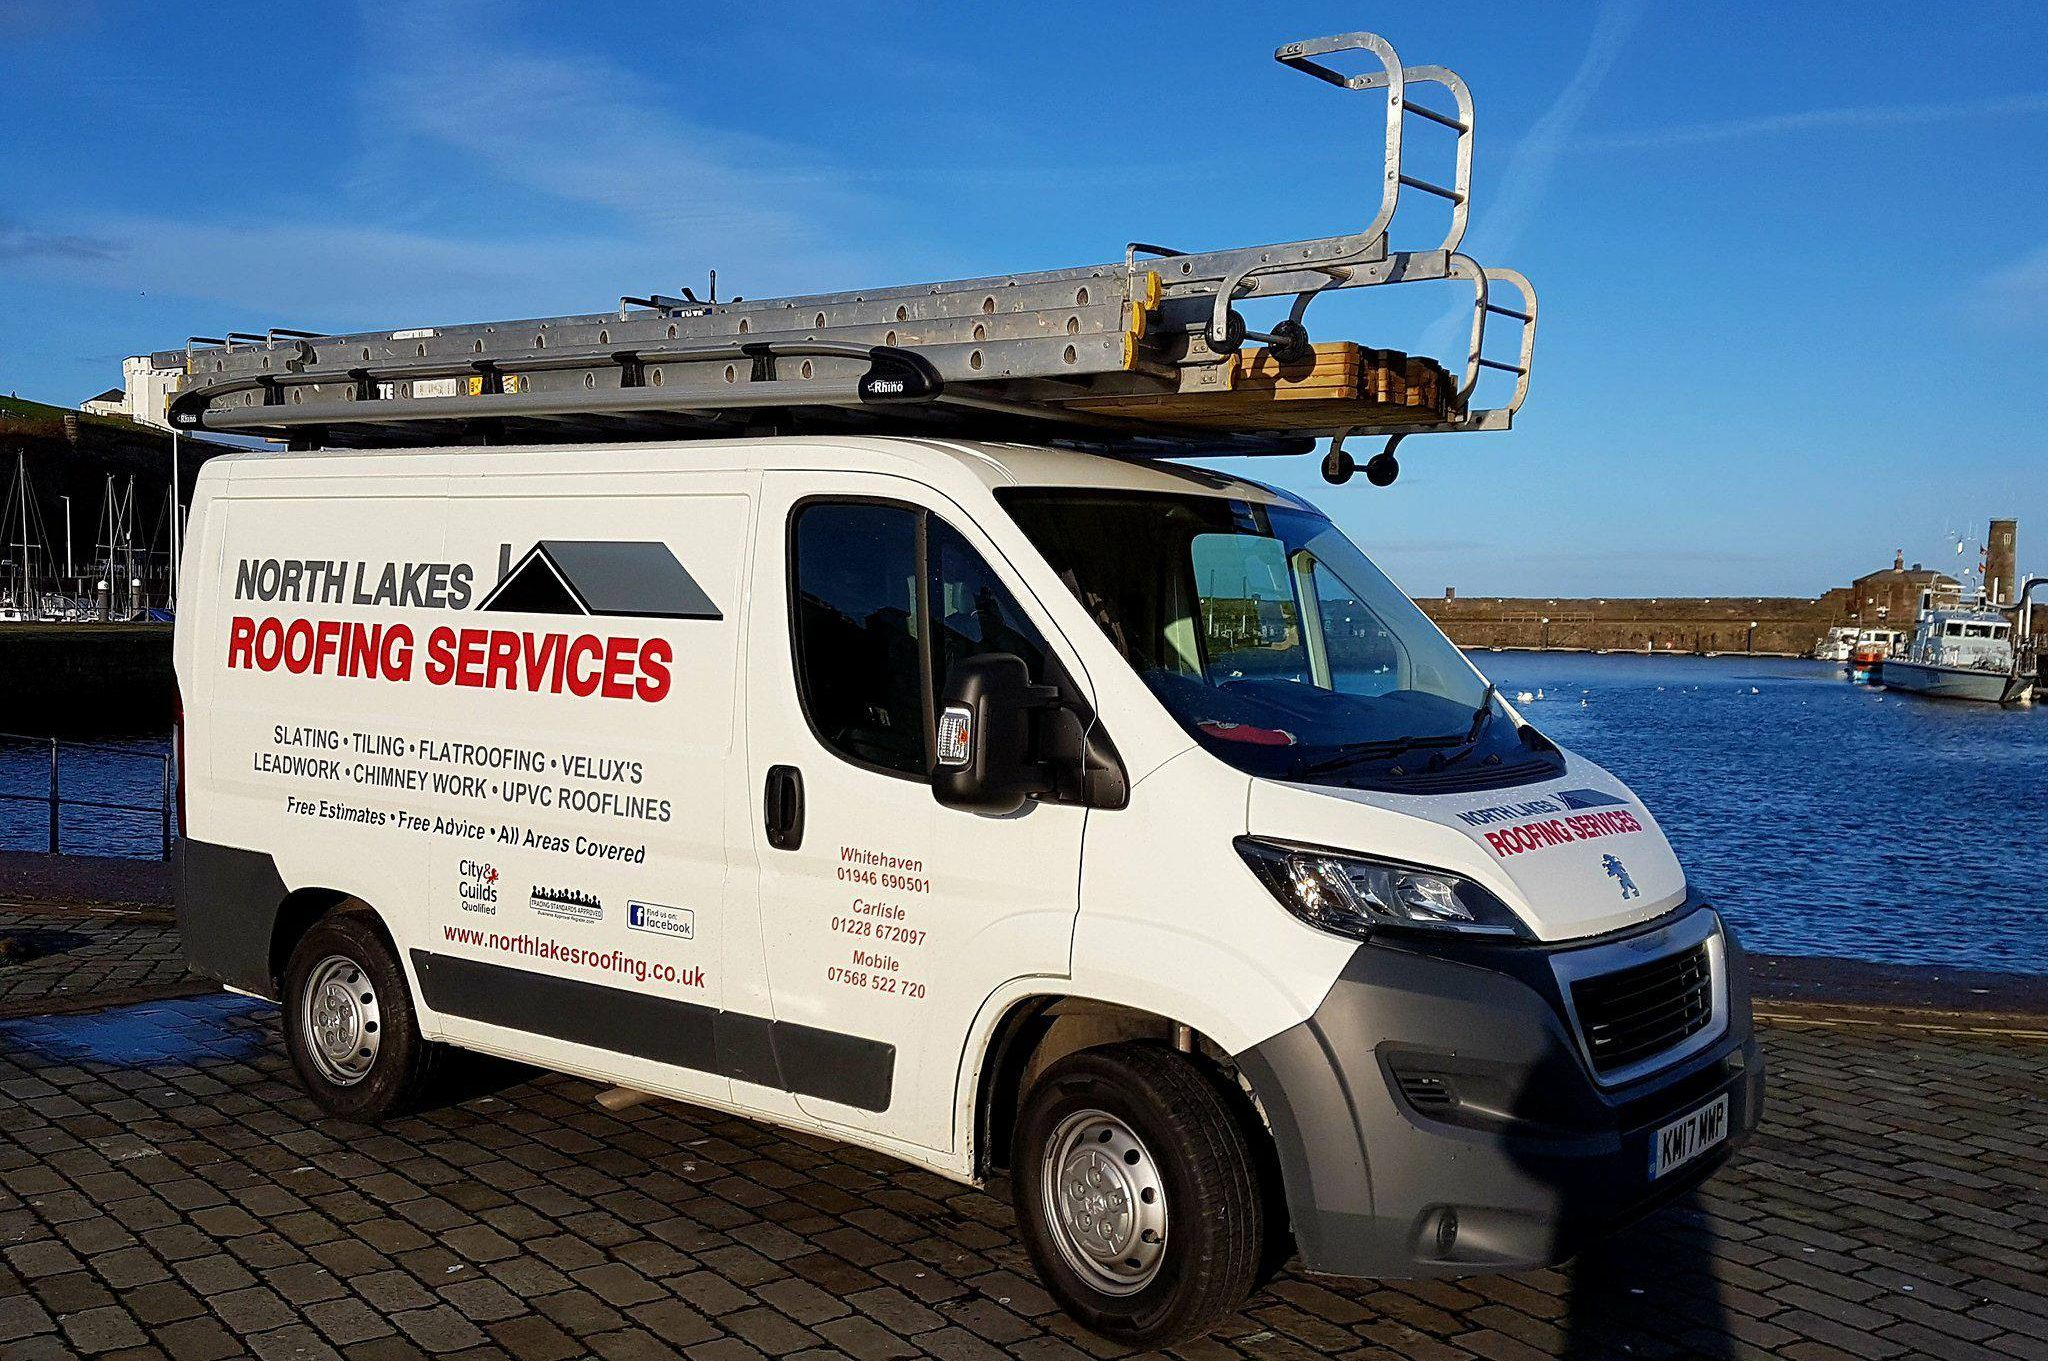 North Lakes Roofing Cumbria Van